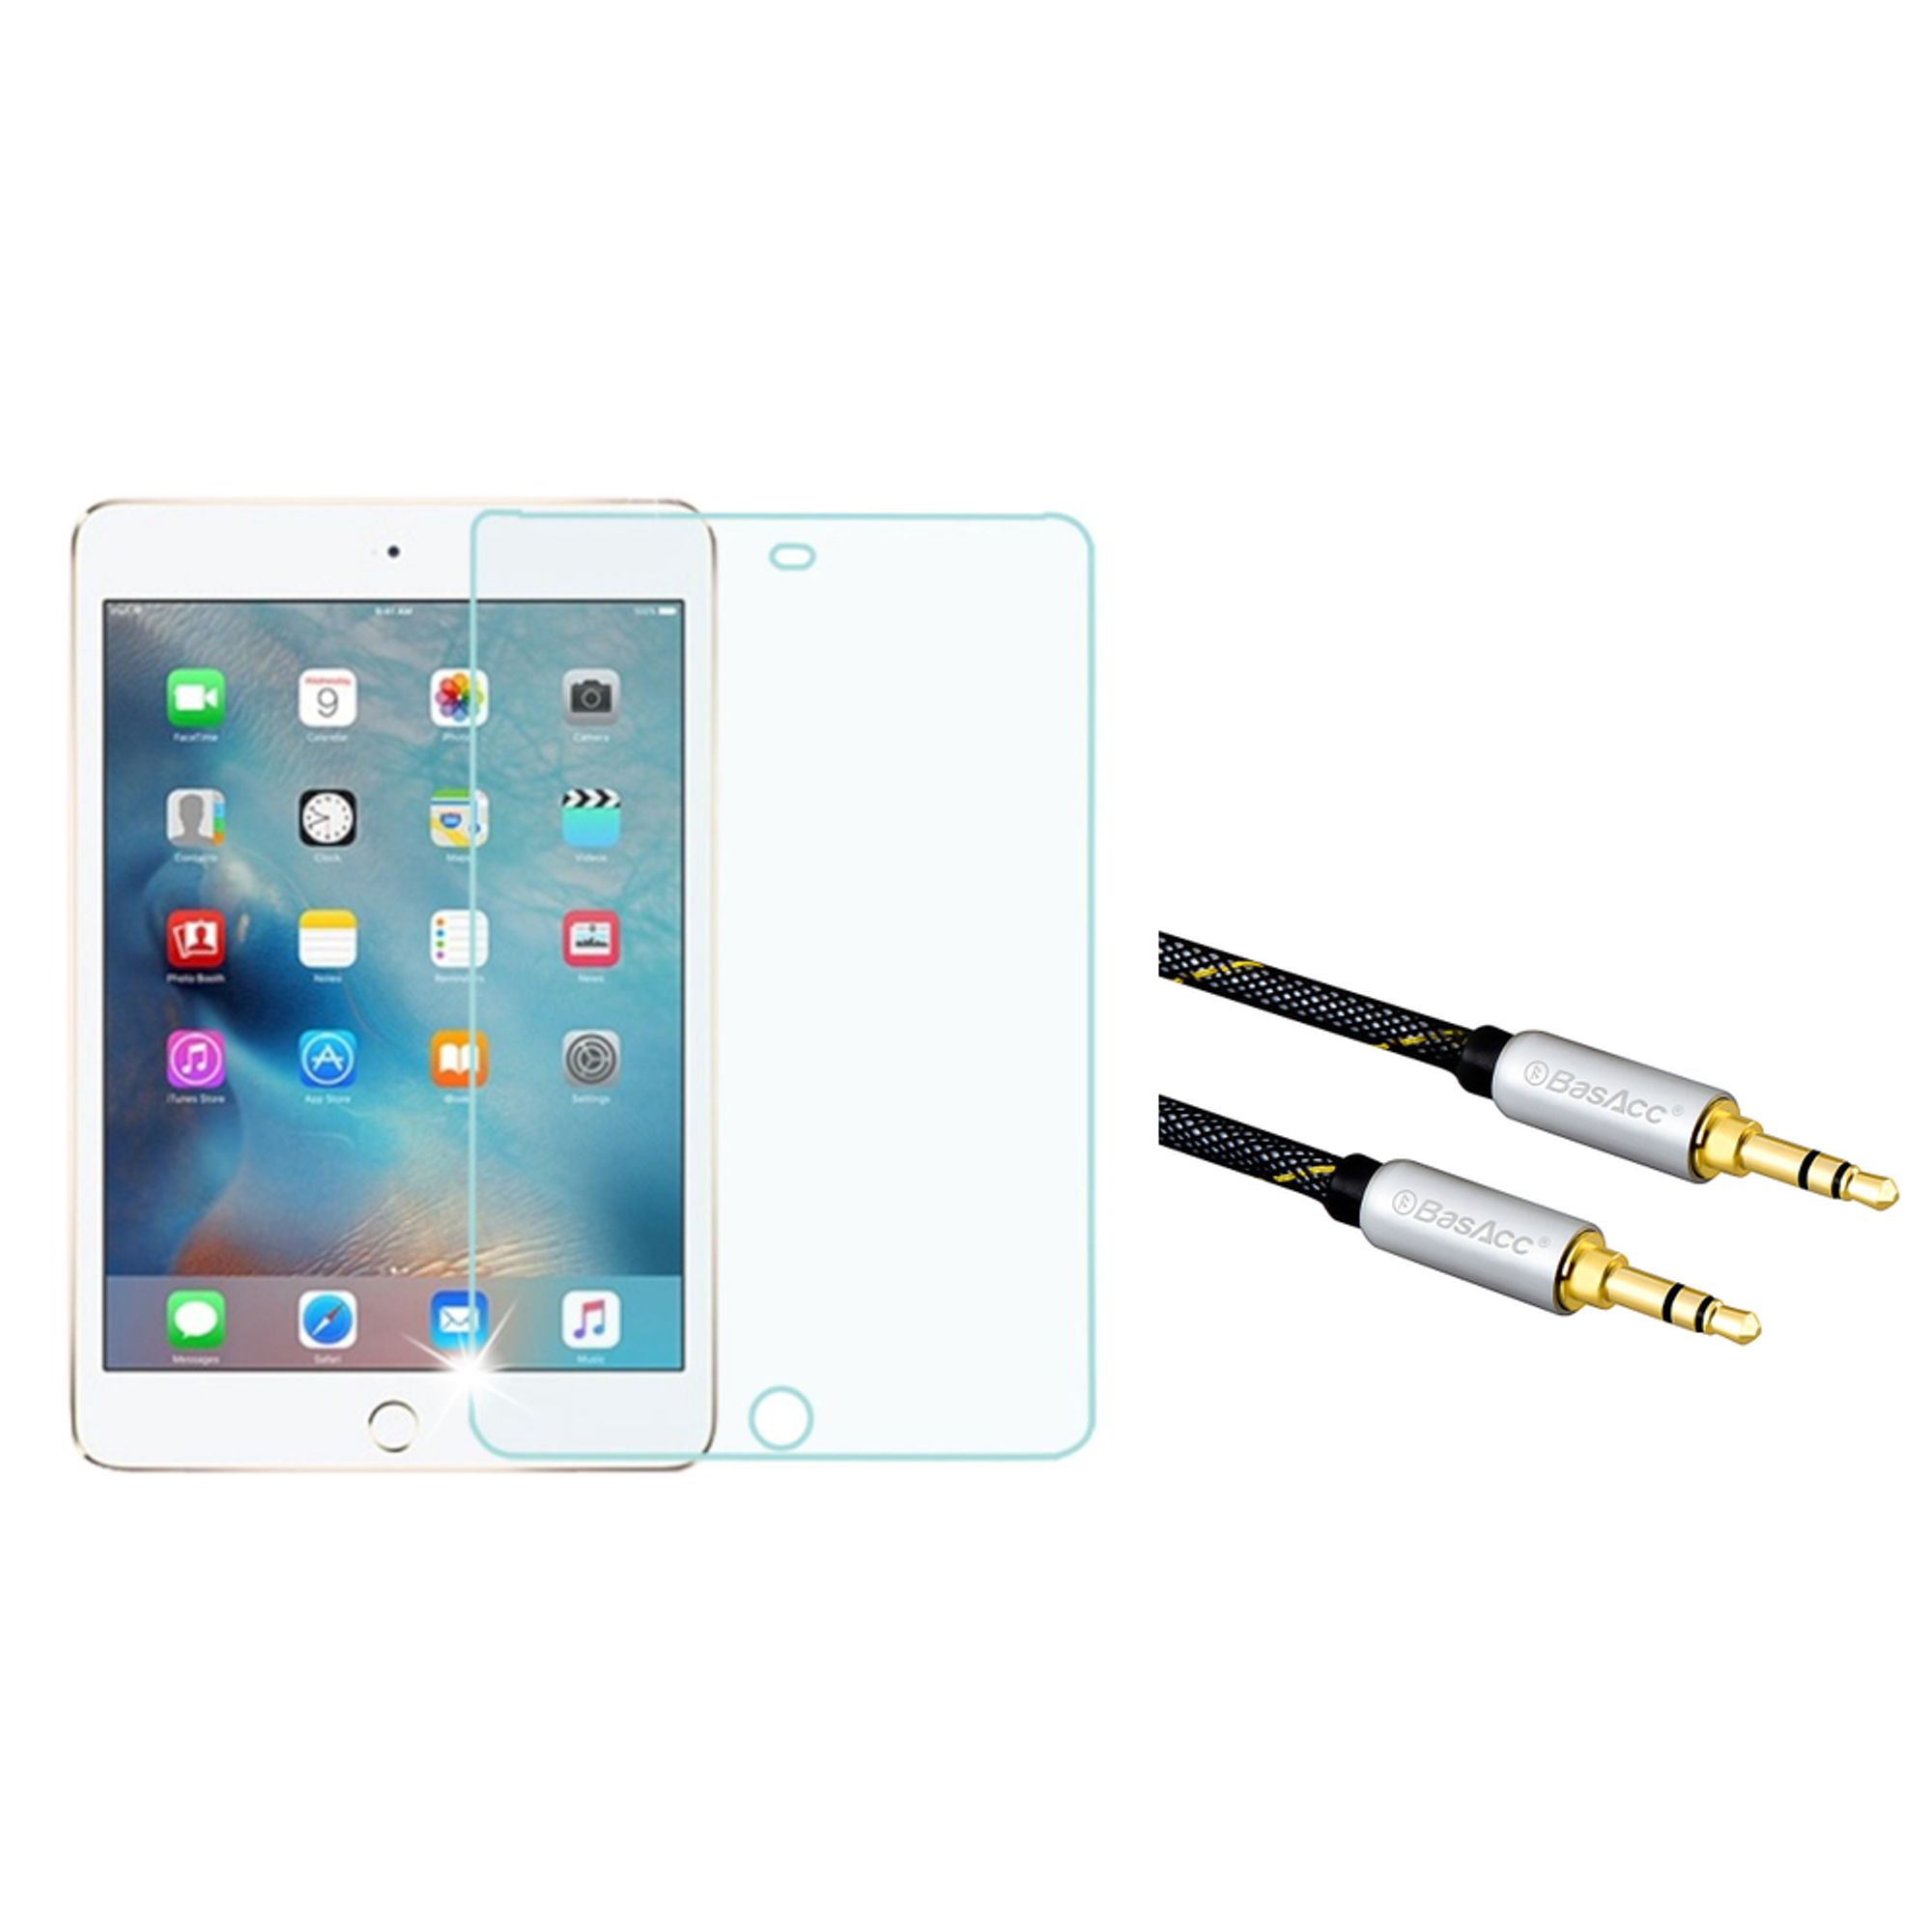 Insten Tempered Glass Screen Protector For iPad Mini 4 4th Gen (2015) (with 3.5mm Audio Extension Cable M/M) iPad Mini 2019